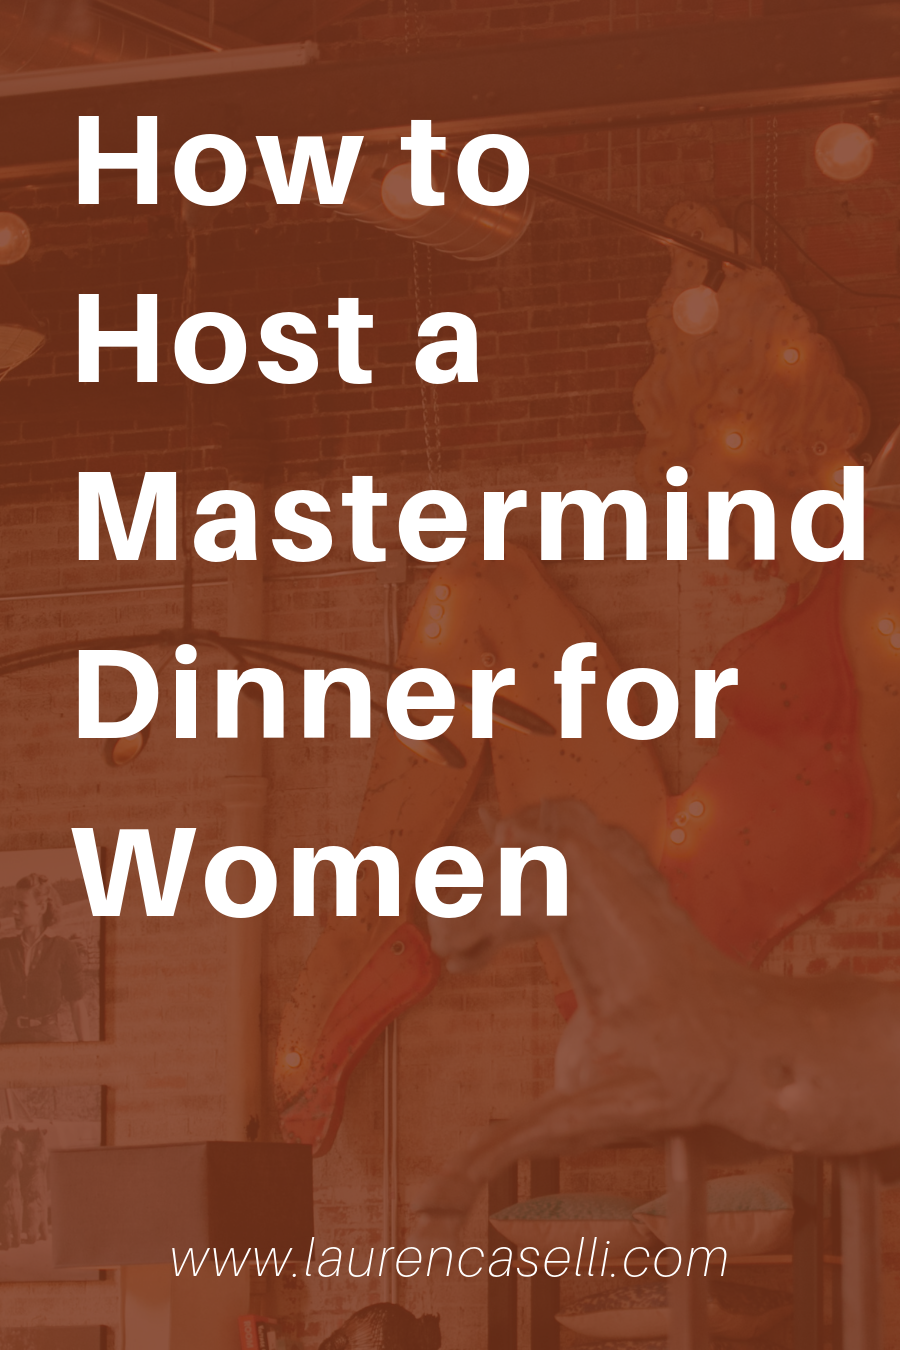 Want to know how to host a mastermind dinner? Read this post to find out the step-by-step process!